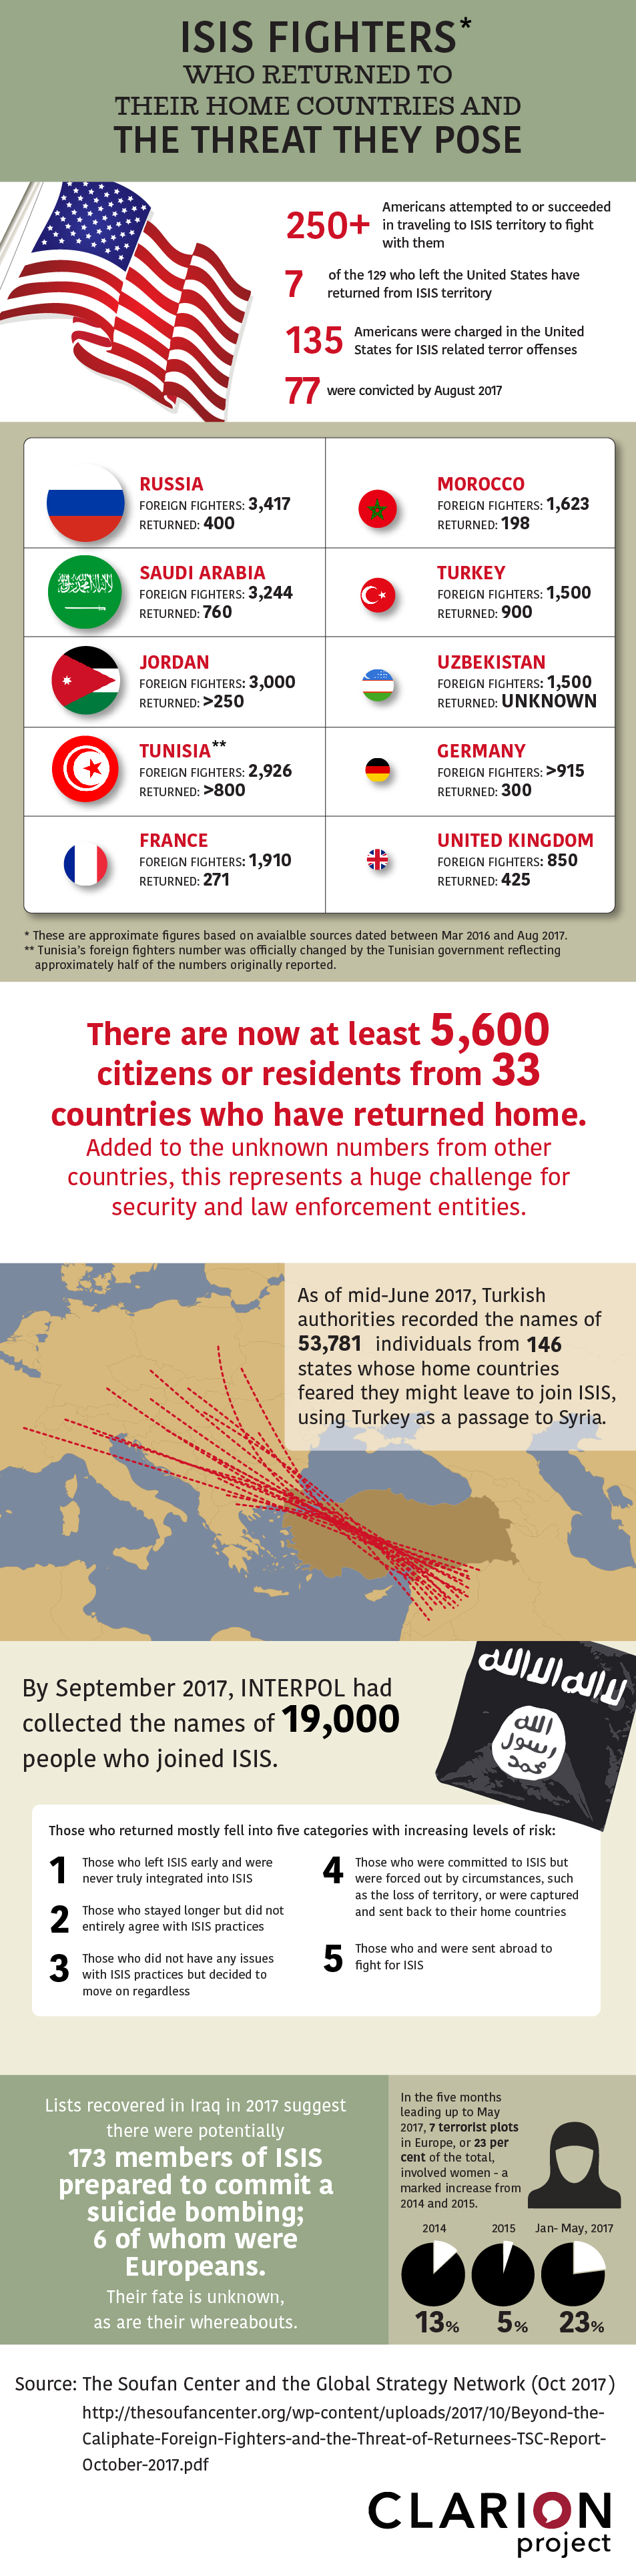 Infographic detailing the countries where ISIS fighters have returned and their numbers.